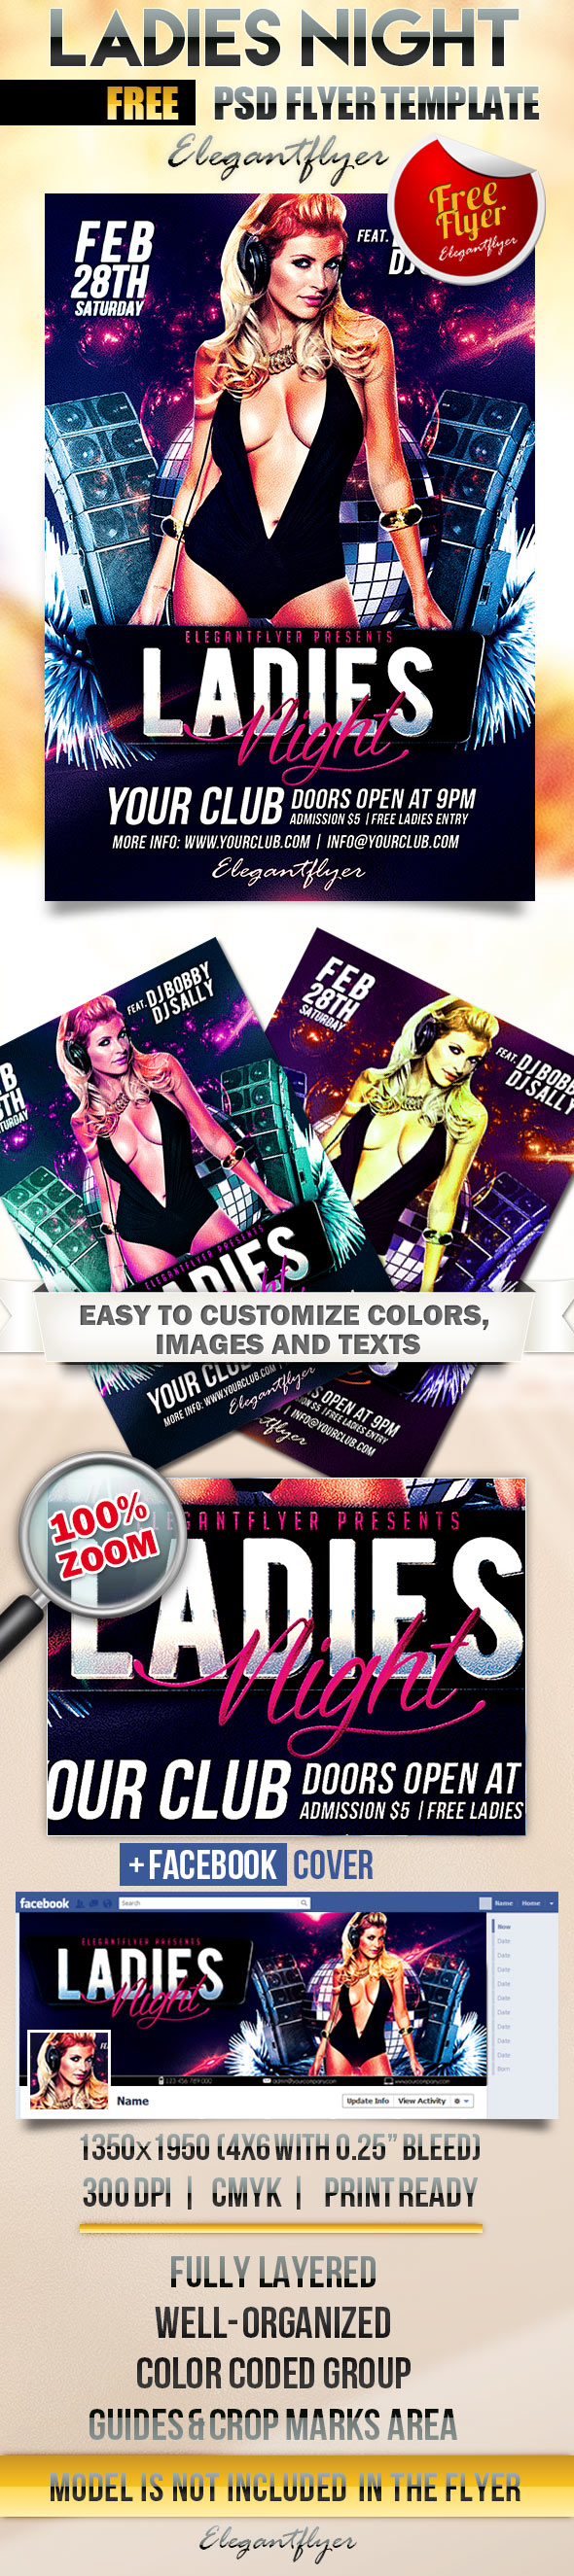 Free Flyer Template For Ladies Night Ladies Night Free Flyer